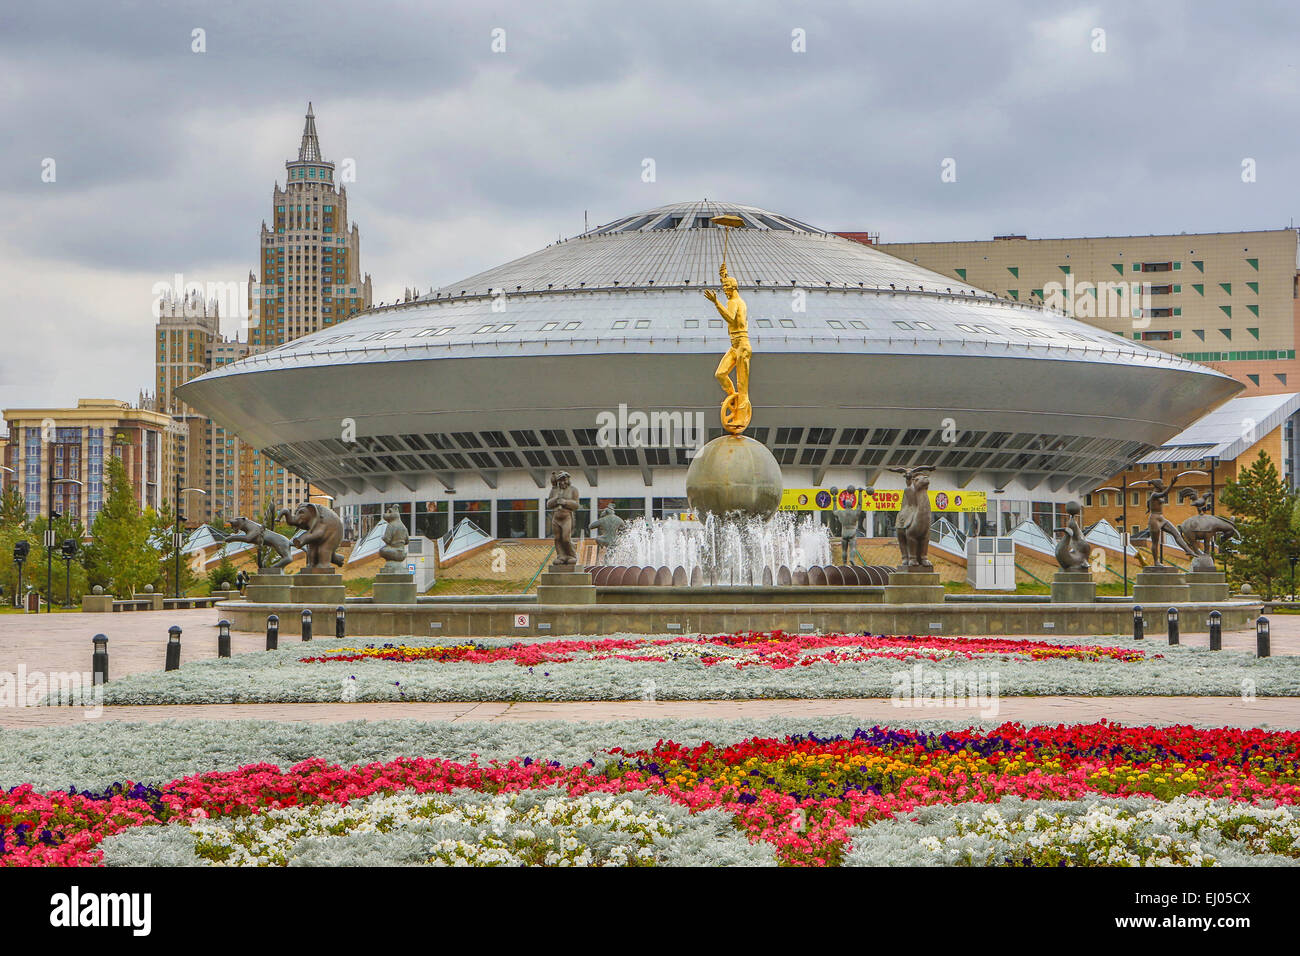 Astana, City, Circus, Kazakhstan, Central Asia, New, Summer, architecture, no people, touristic, travel - Stock Image